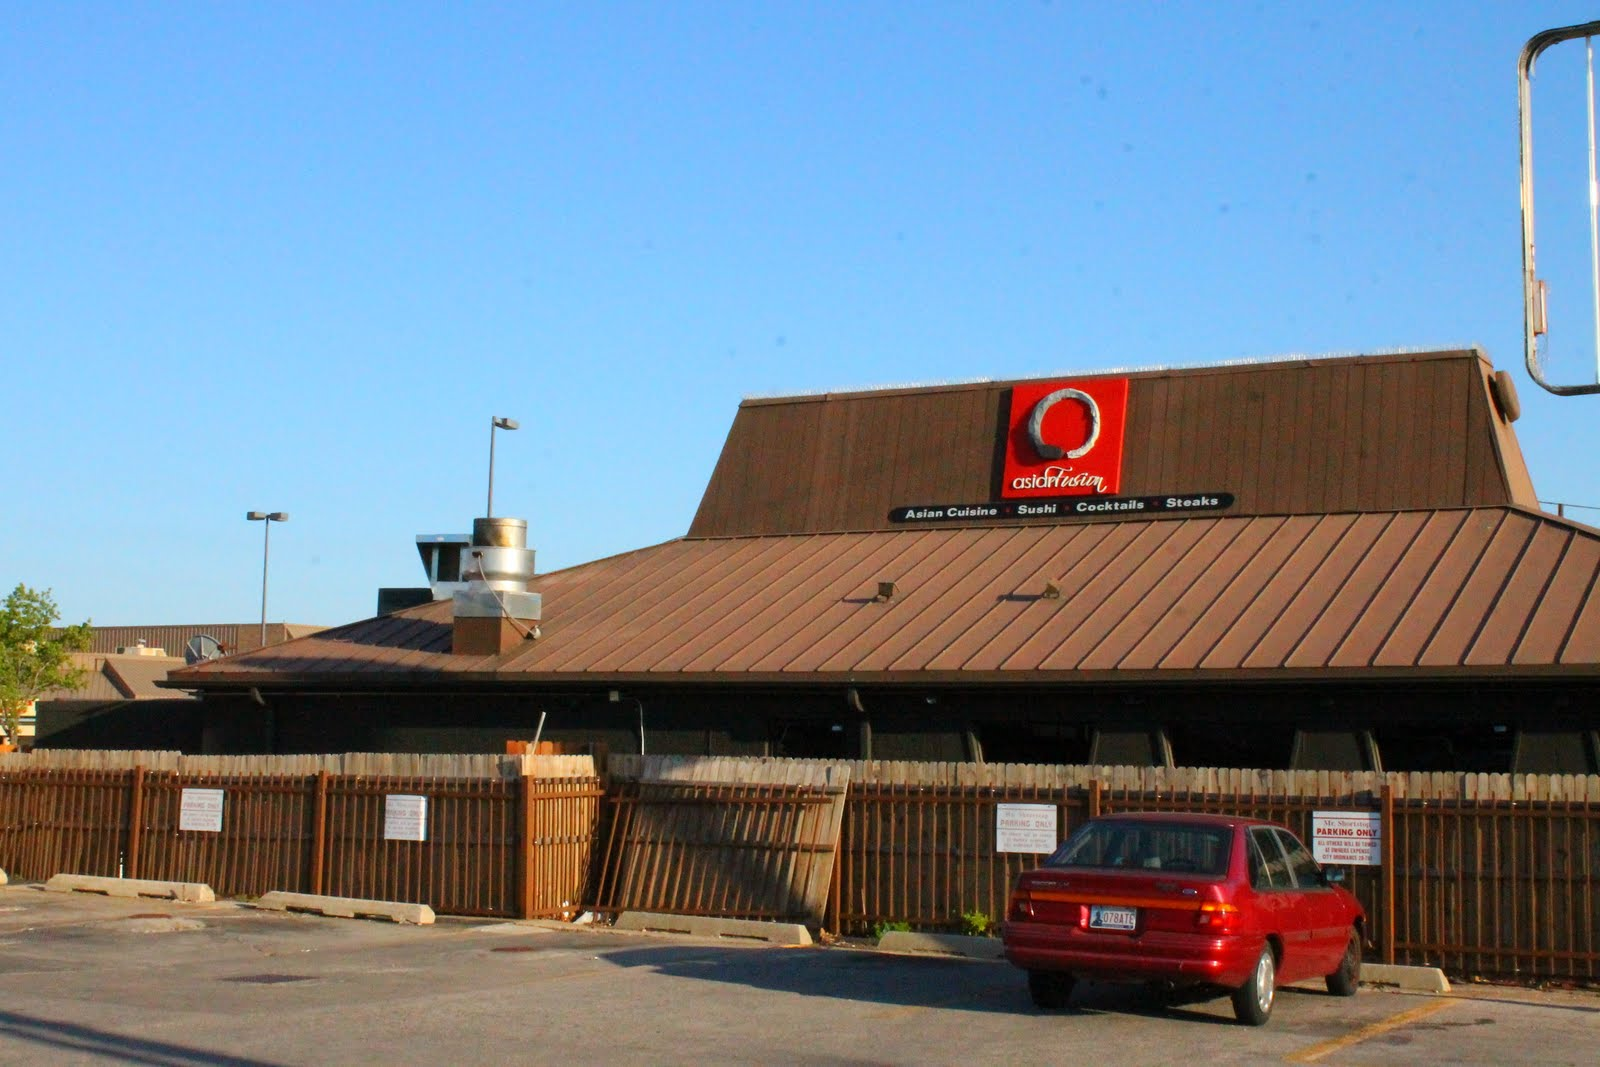 Used to be a pizza hut o asian fusion in norman ok for Asian cuisine norman oklahoma